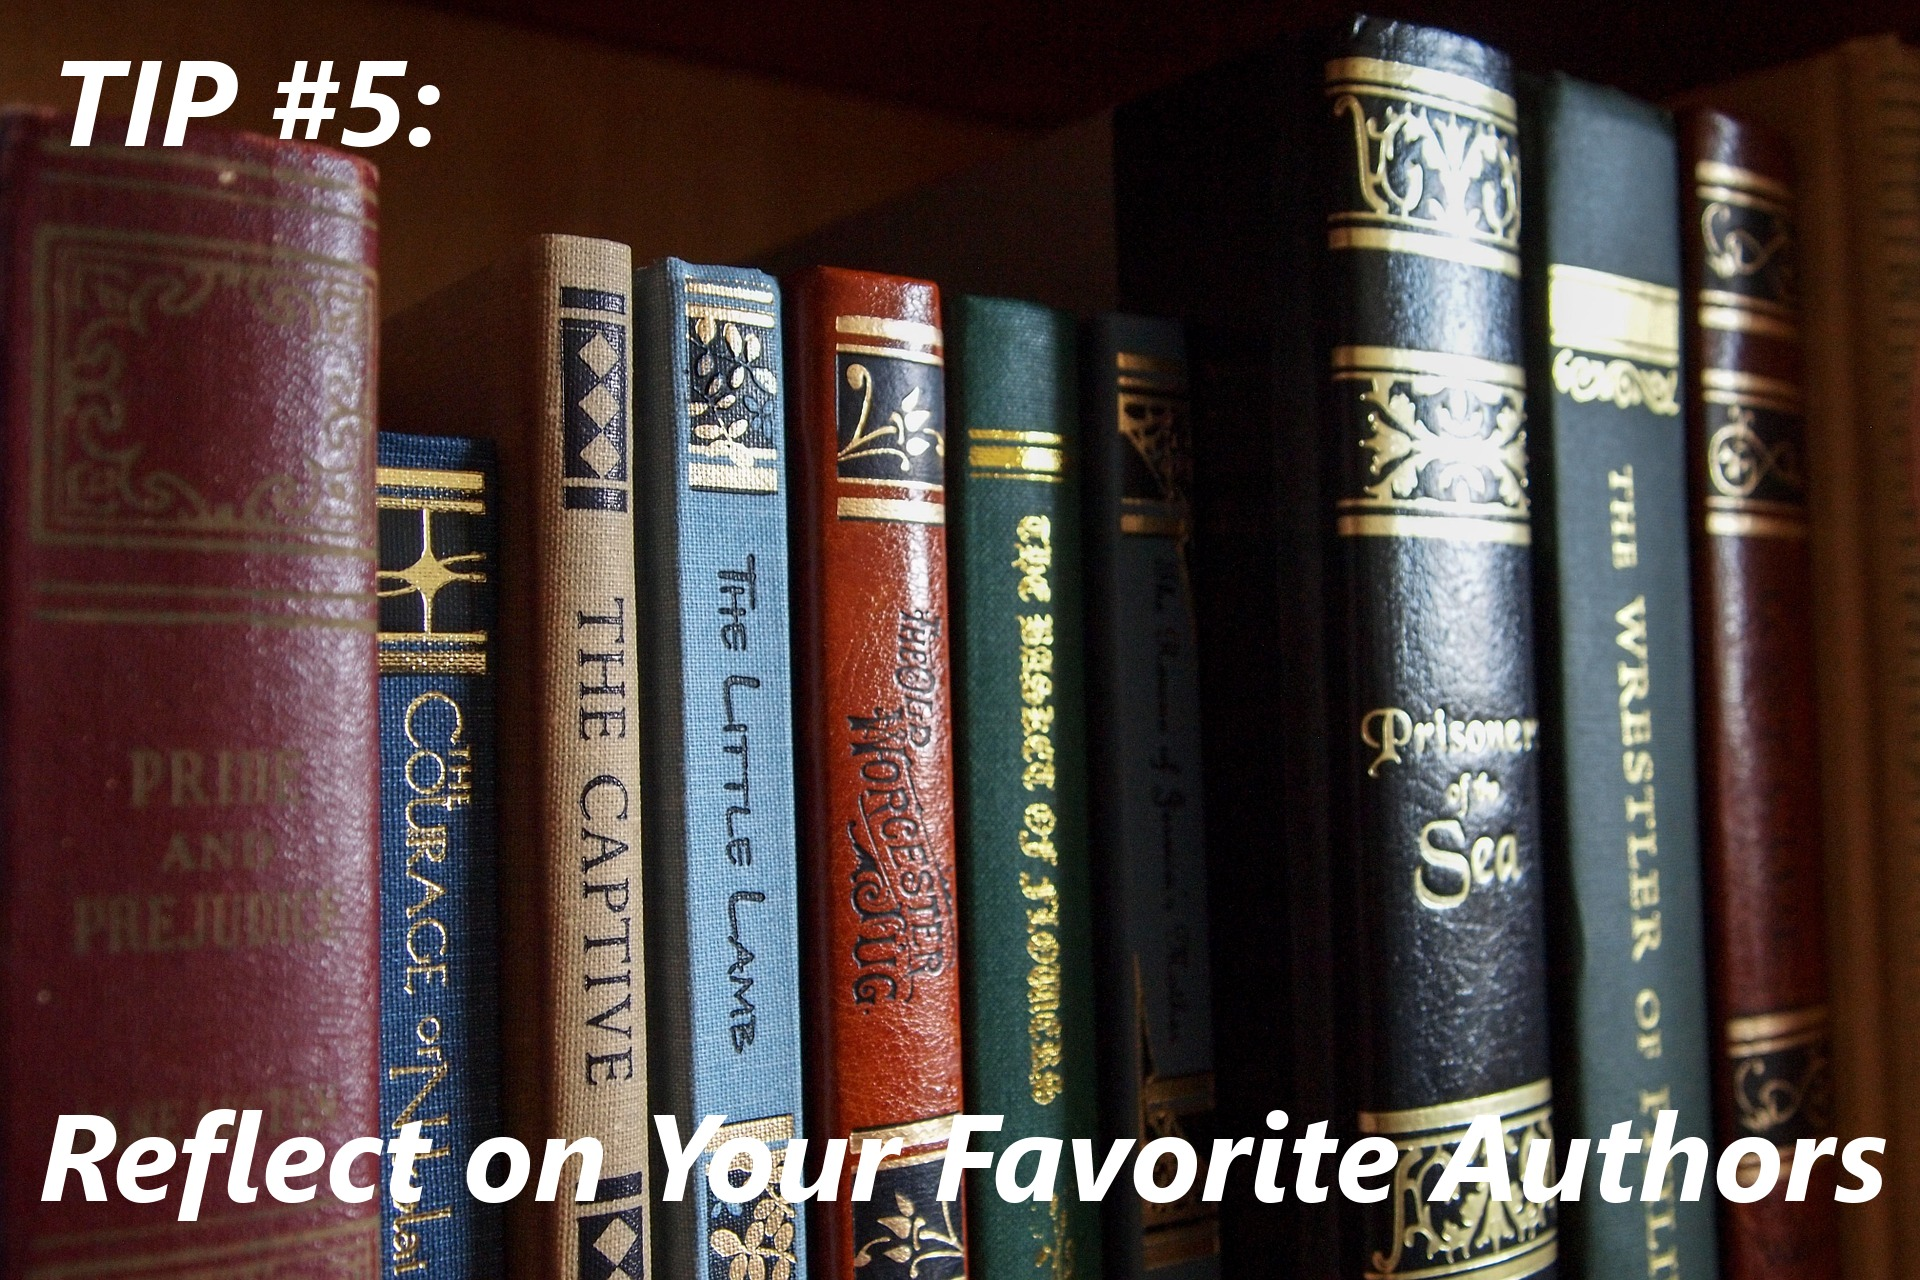 need some writing inspiration? reflect on your favorite authors.